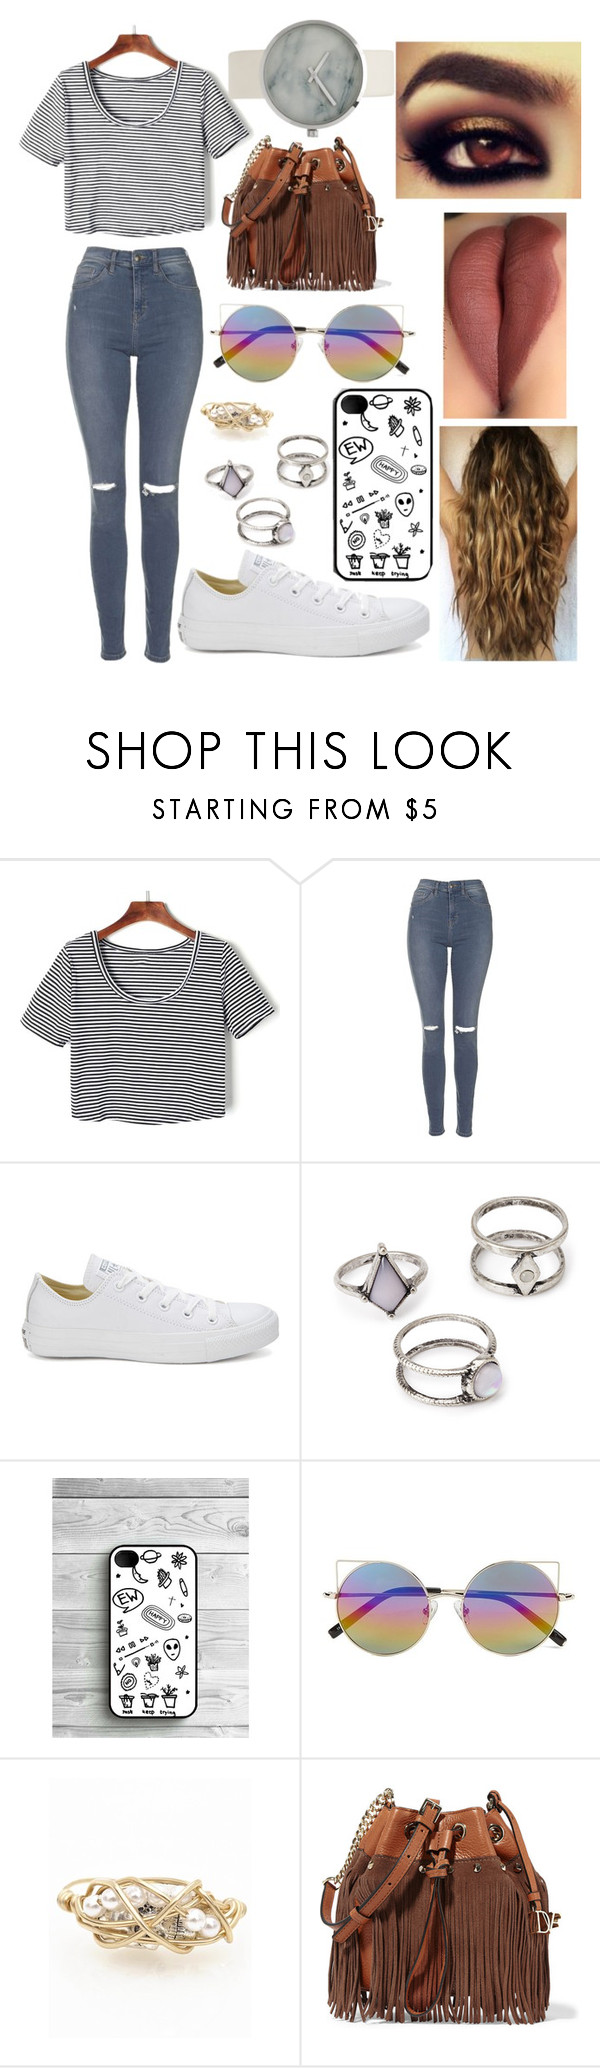 """""""Black&White"""" by rebecapaynefarro on Polyvore featuring WithChic, Topshop, Converse, Forever 21, Linda Farrow, Kat&Bee and Diane Von Furstenberg"""